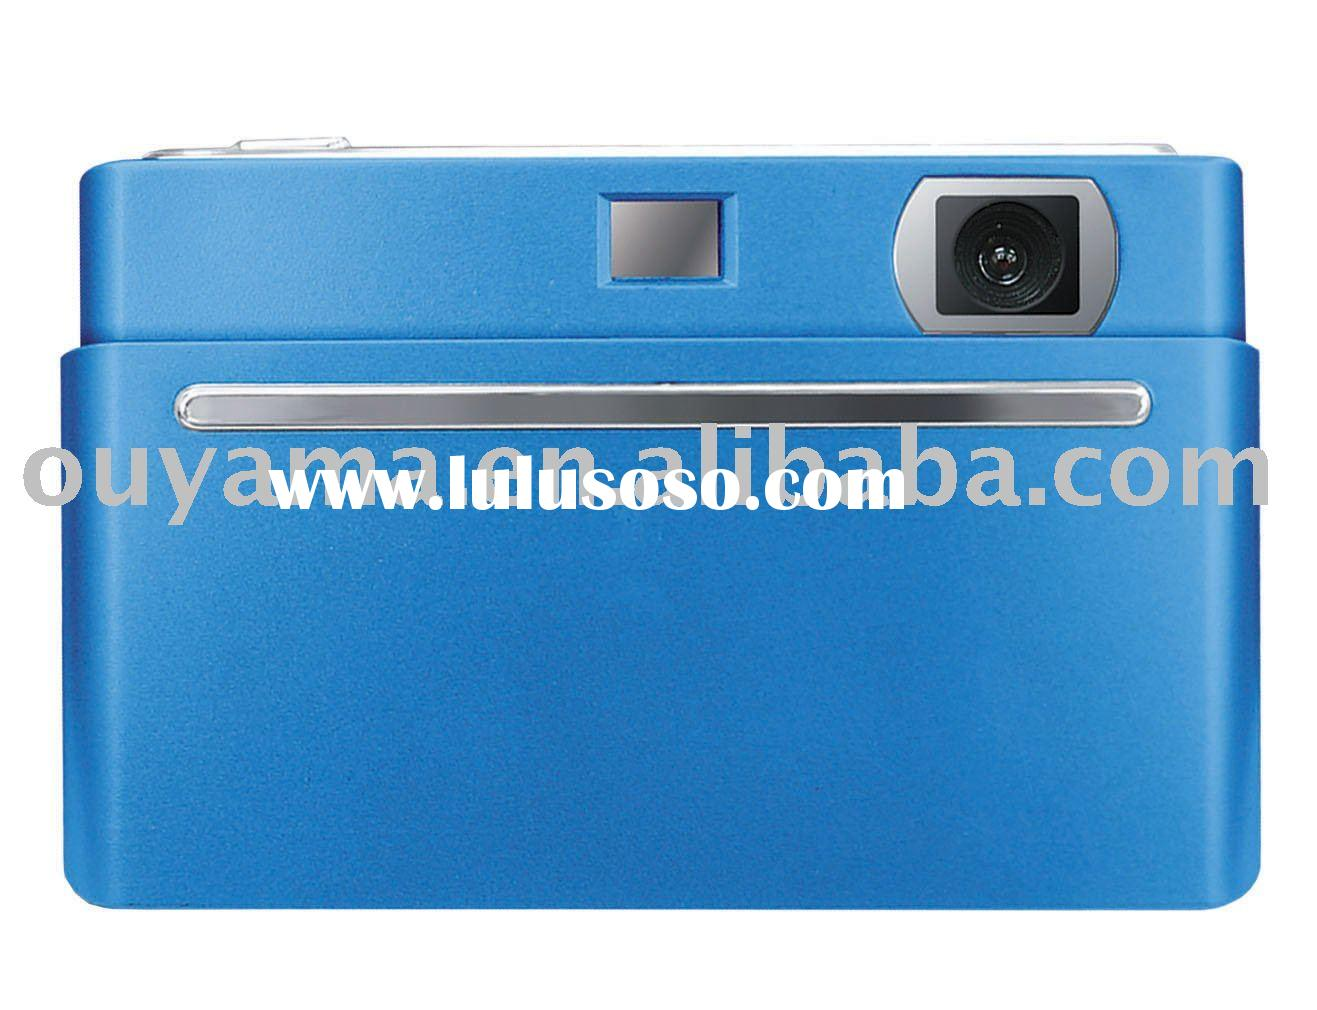 brand digital camera DG113